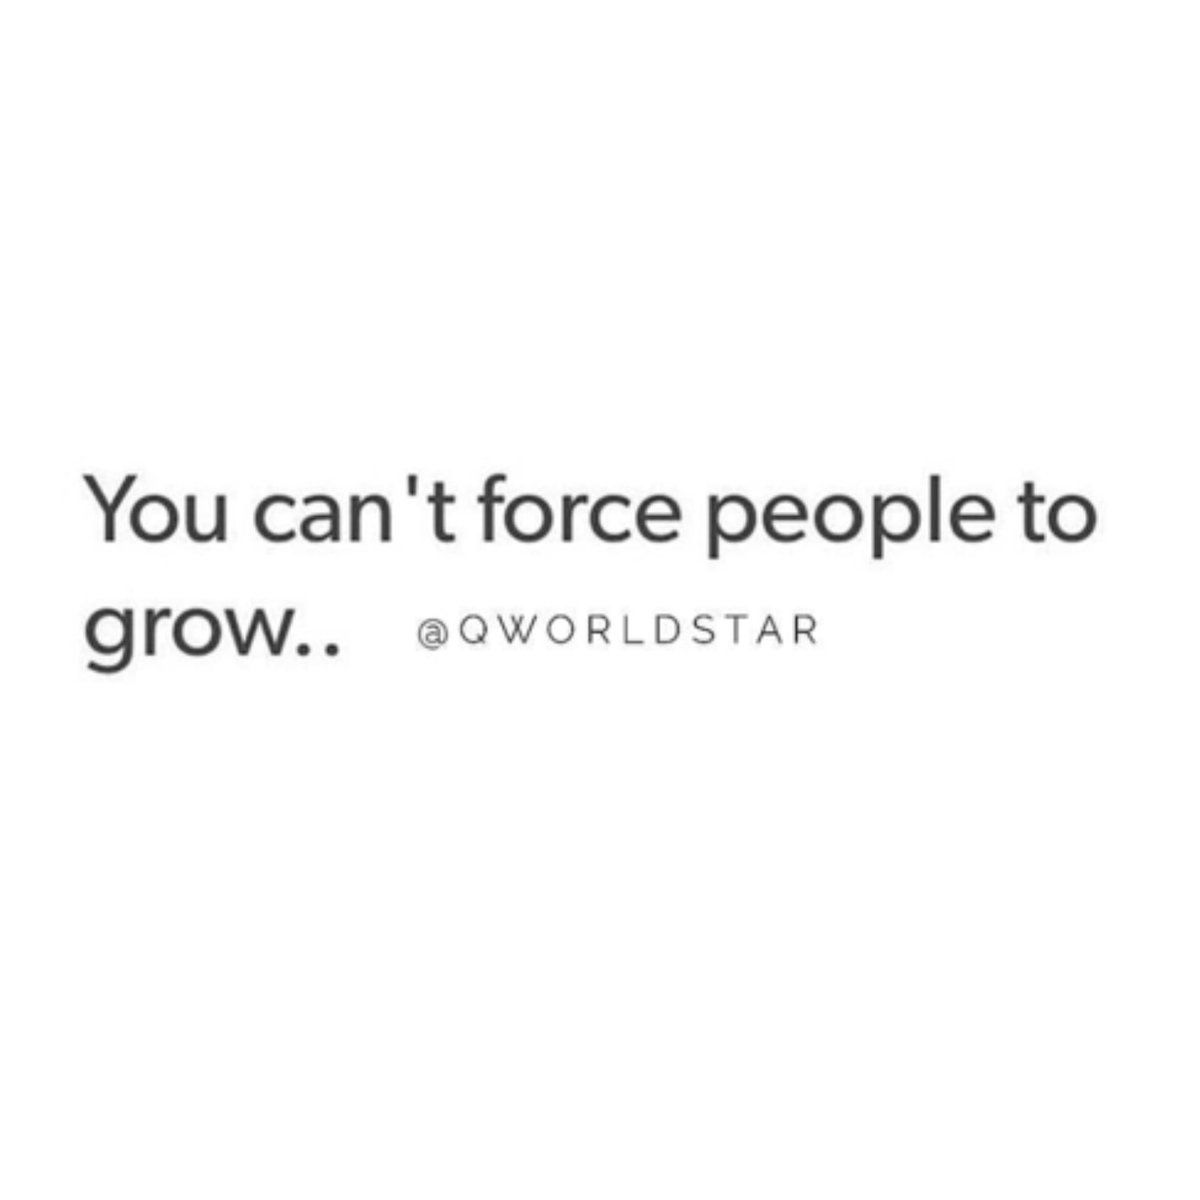 """Some people want to stay stagnant doing the same old BS...just keep growing & let them do them!"" 💯 @QWorldstar"